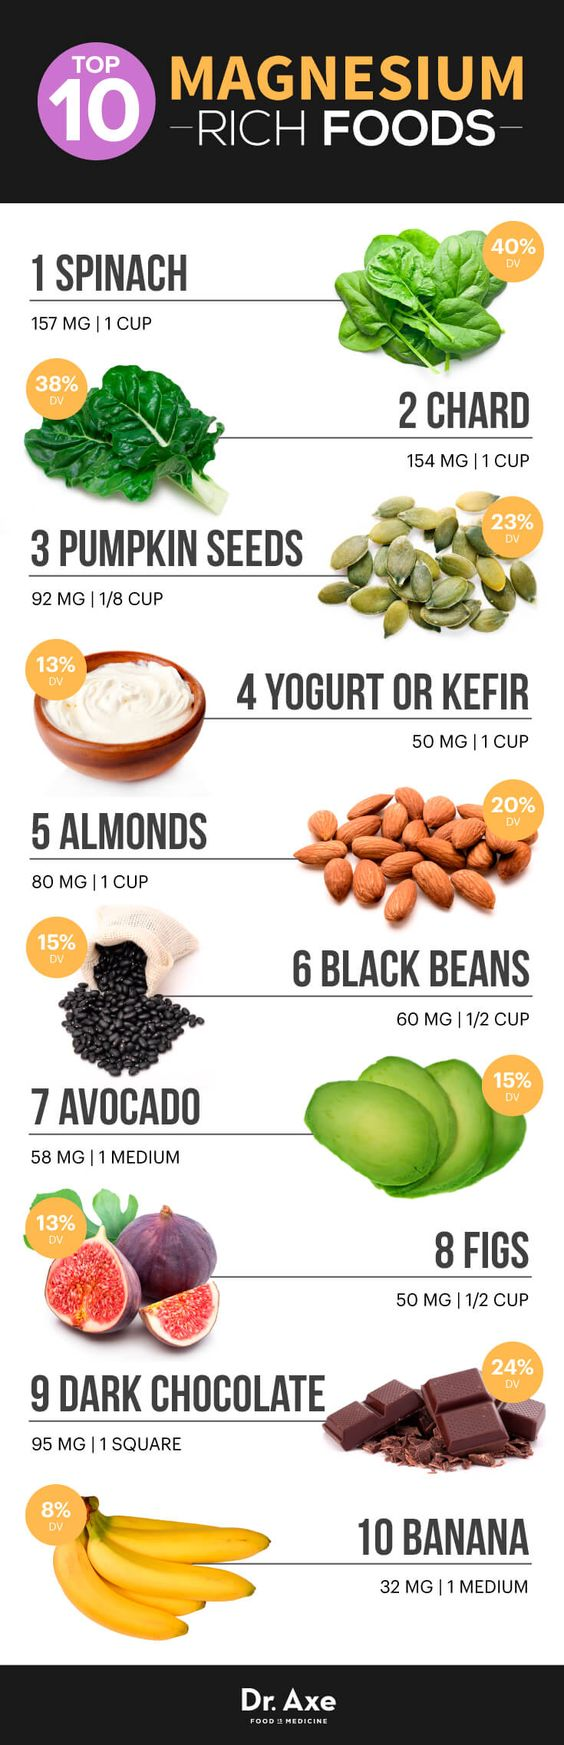 Top 10 Magnesium Rich Foods Plus Proven Benefits - Dr. Axe: